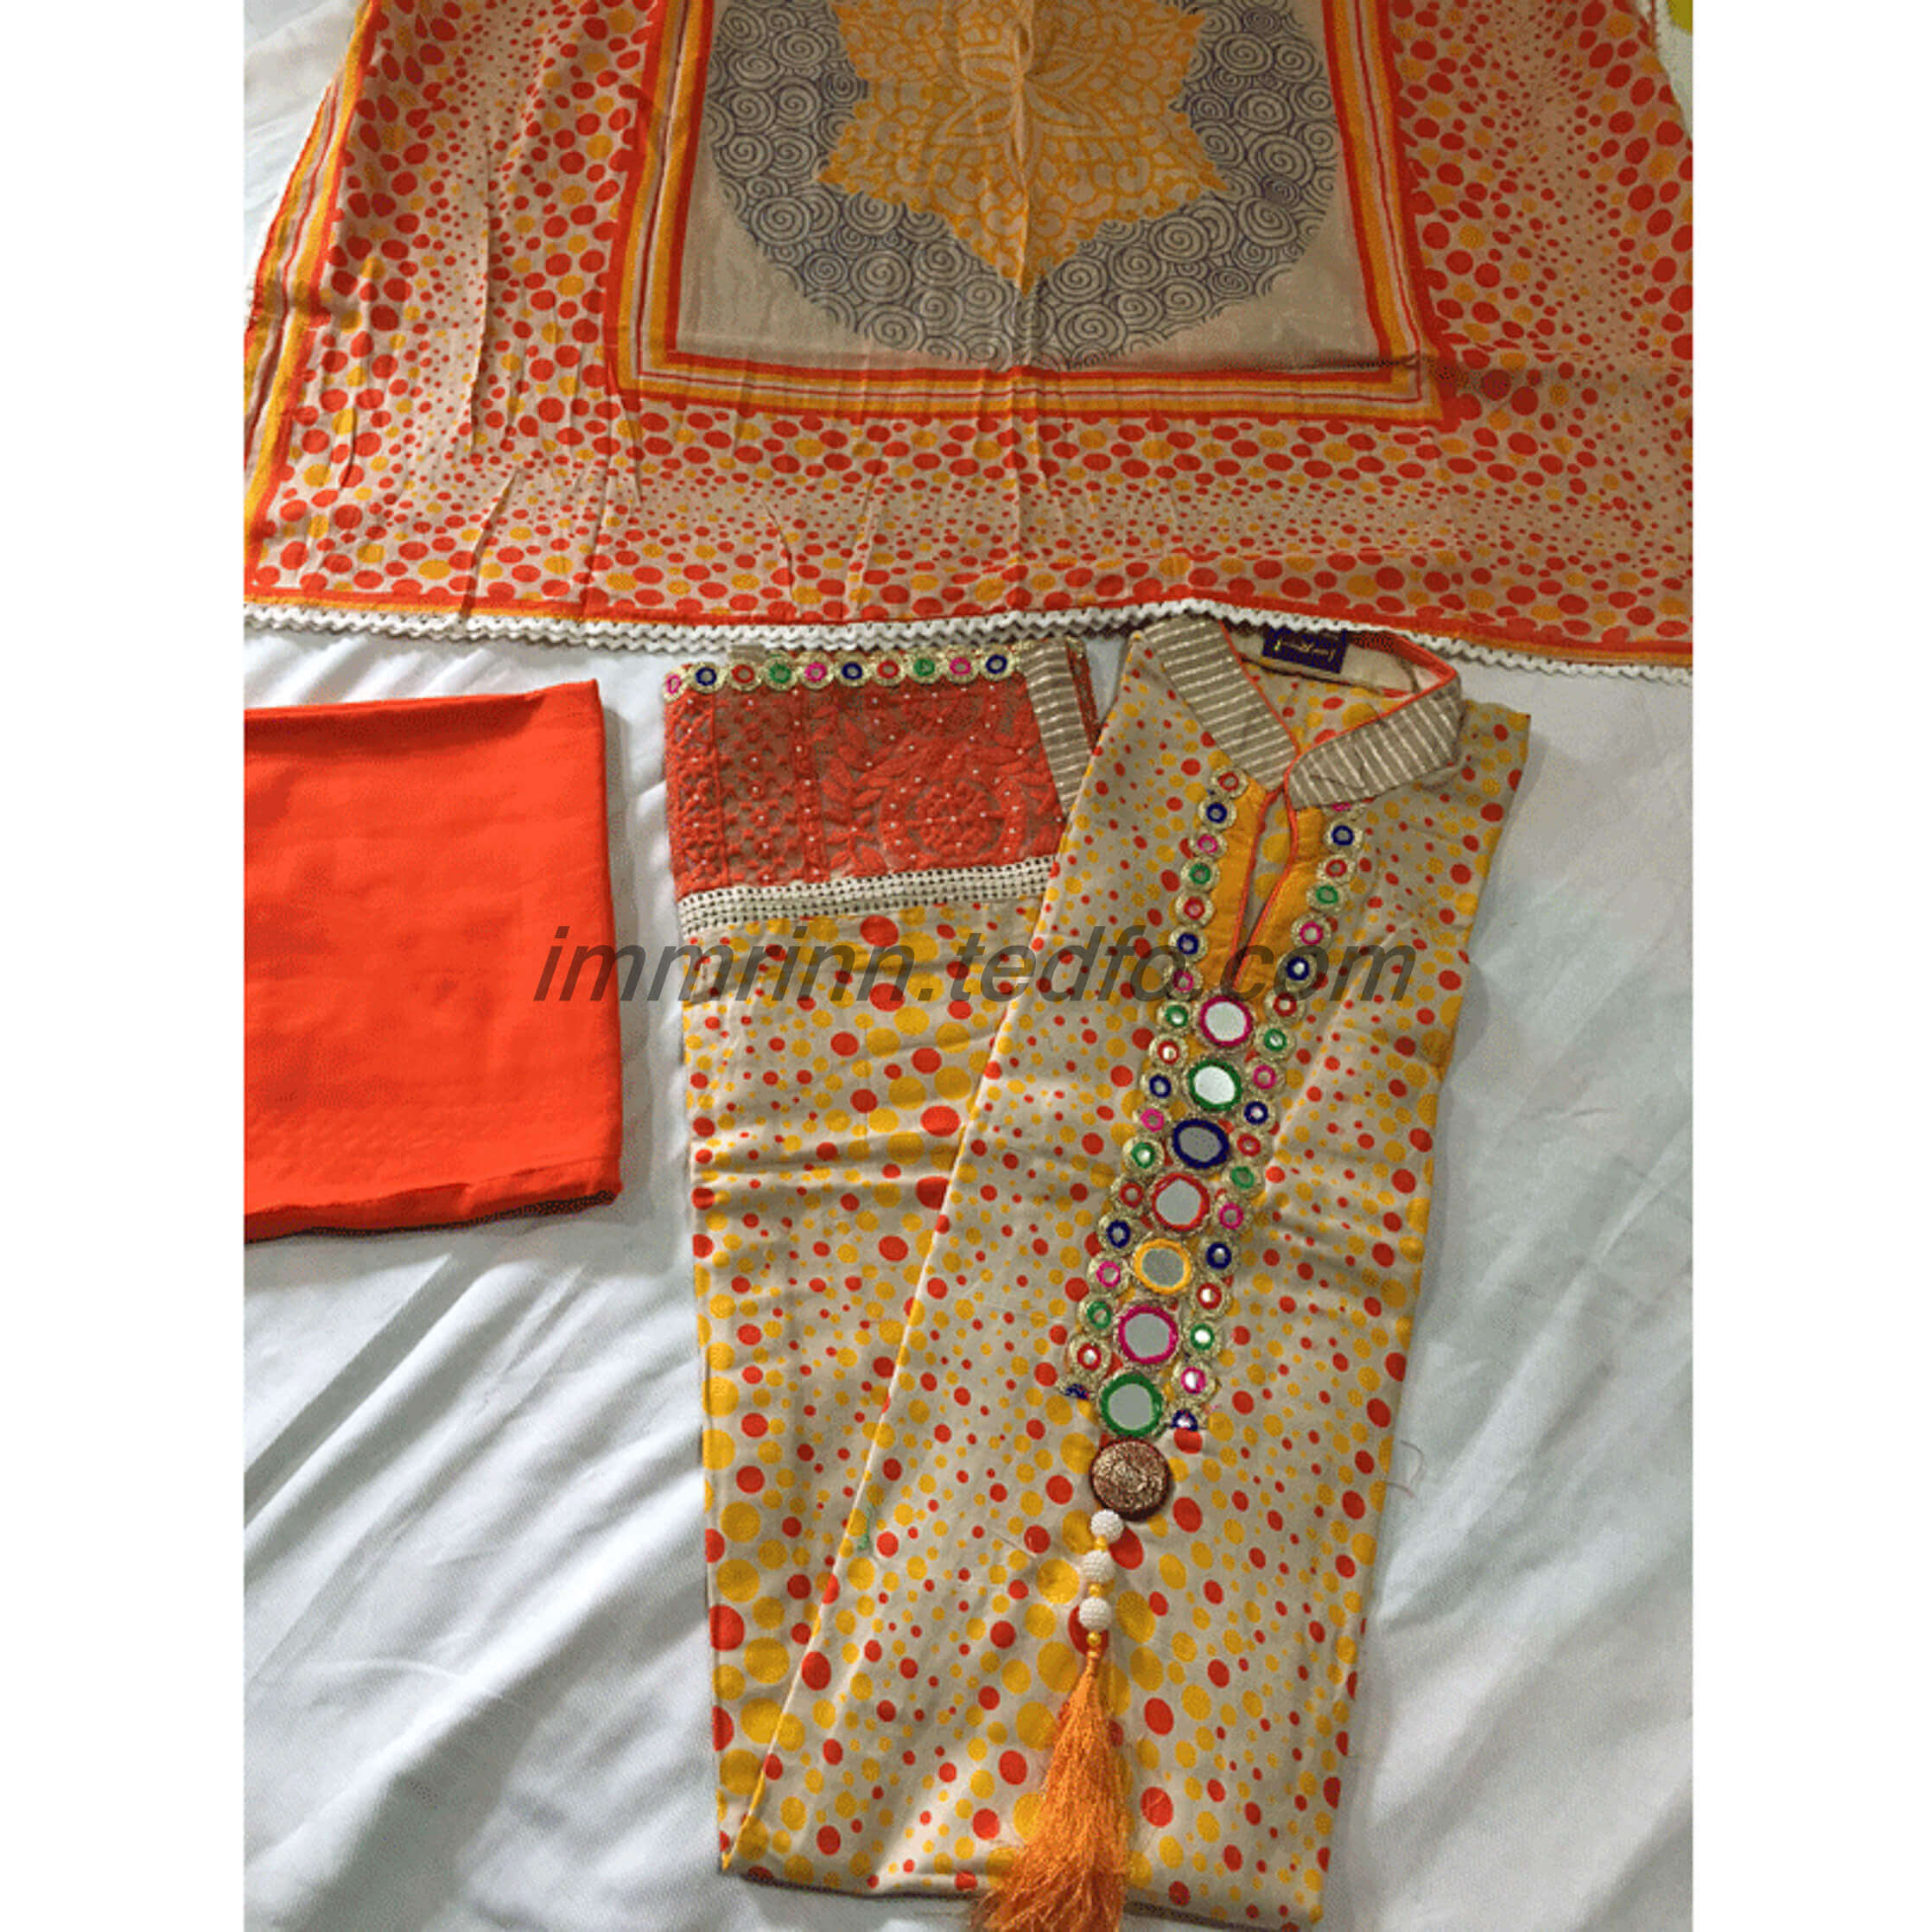 Salwar Kameez, Traditional Women's Attire from Bangladesh.